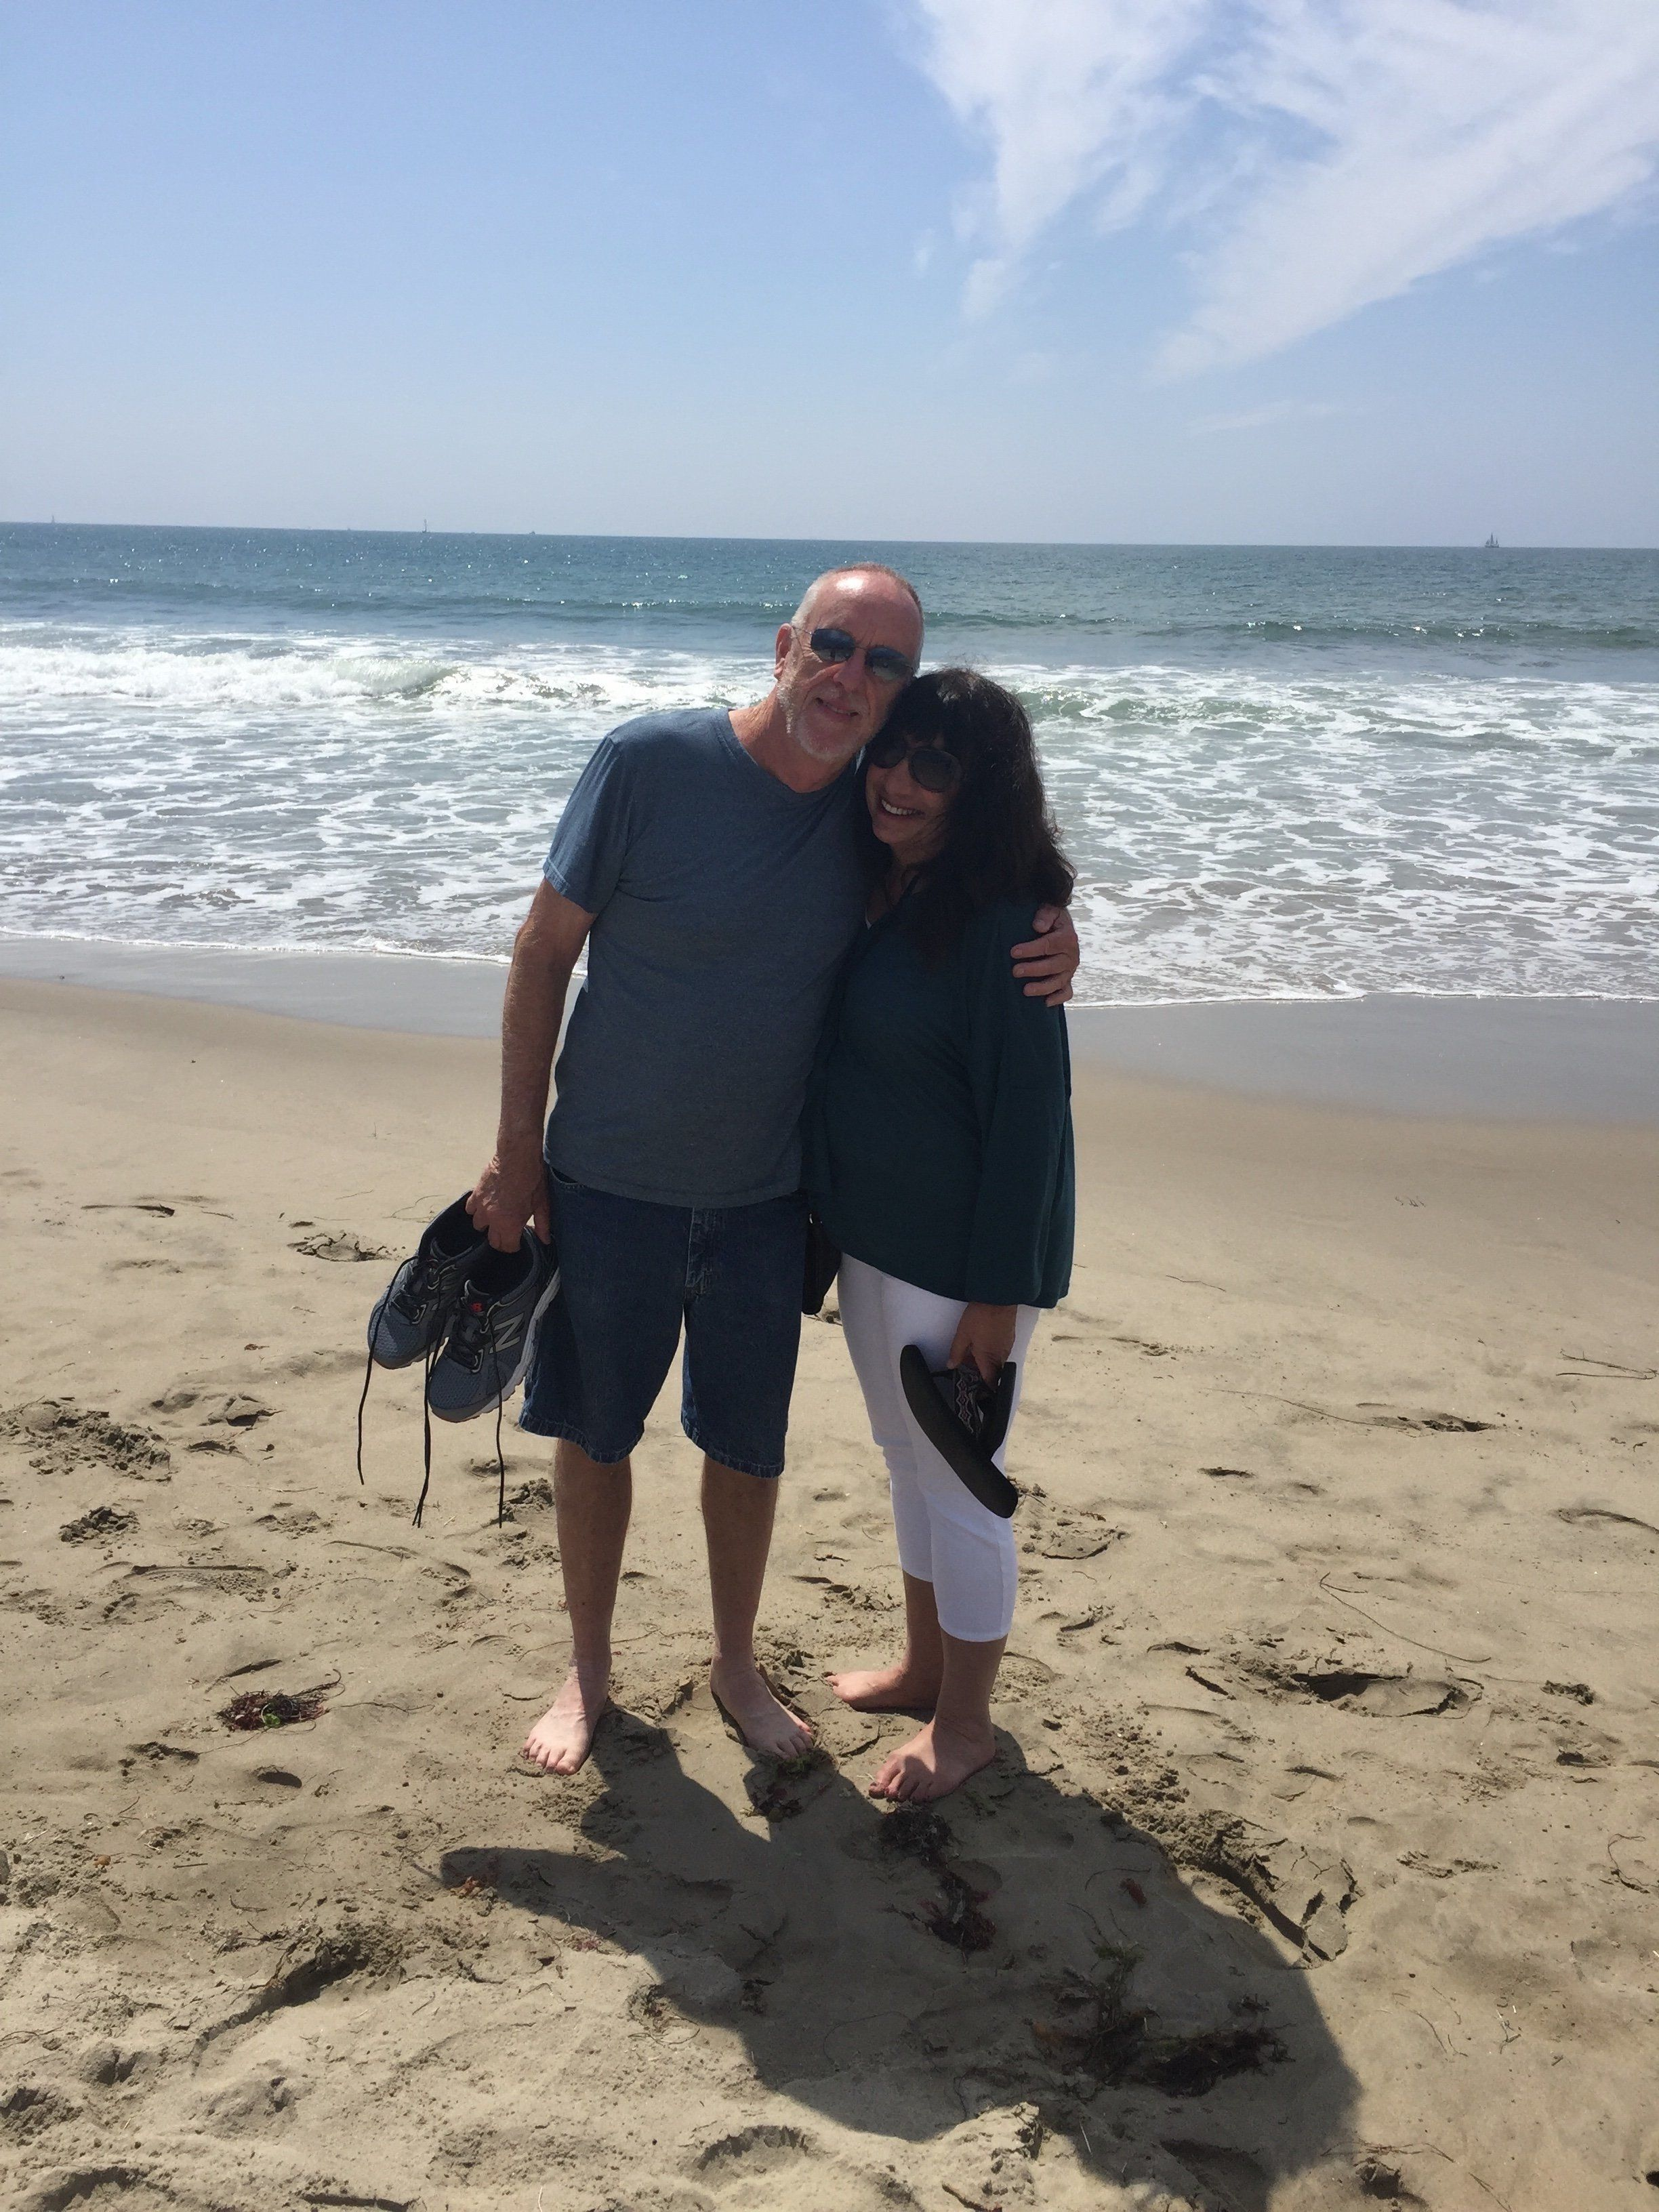 Ann Brenoff and Charlie Lattig met on Zoosk shortly after they were both widowed.